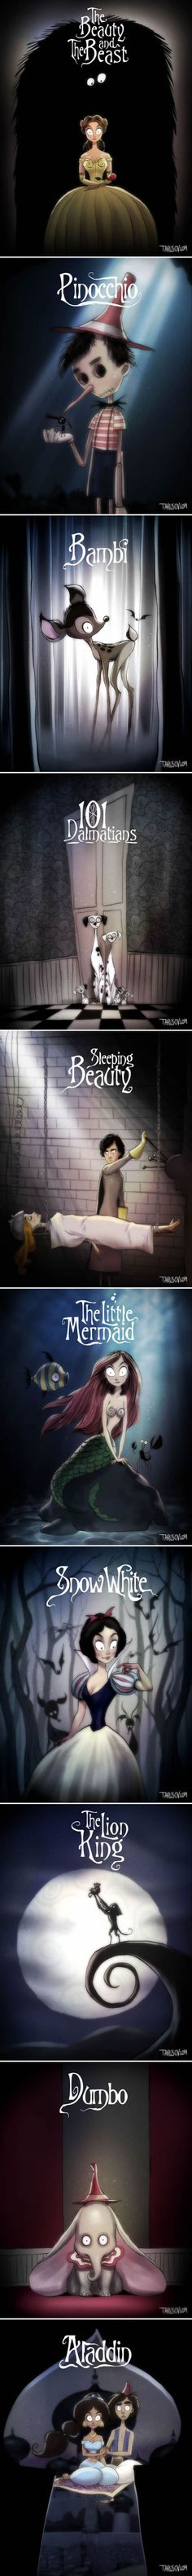 If Tim Burton Directed Disney Movies (By Andrew Tarusov)